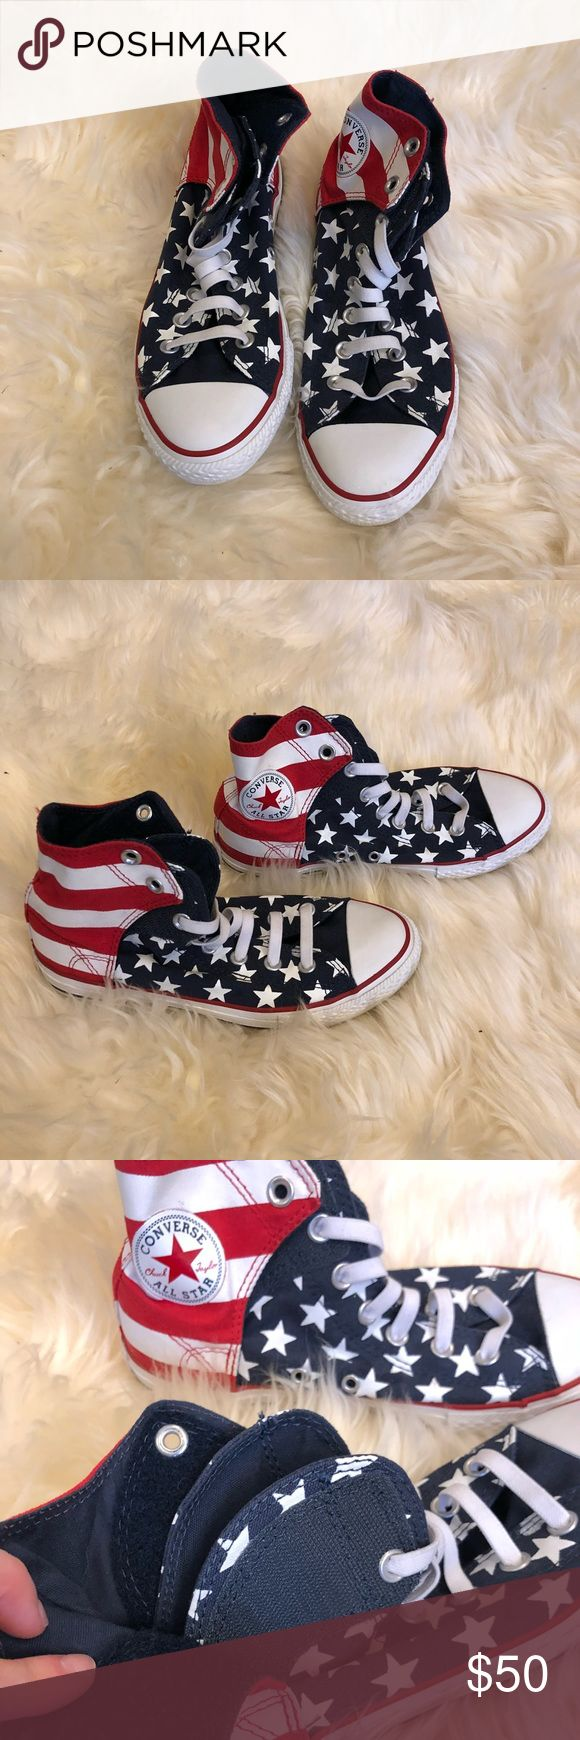 🇱🇷Converse American flag Velcro high top. Practically brand new, worn once. Flawless. Can fold Velcro high top down for shorter look. Size 4 in men's so size 6 in women's but fits like a 7. Converse Shoes Sneakers